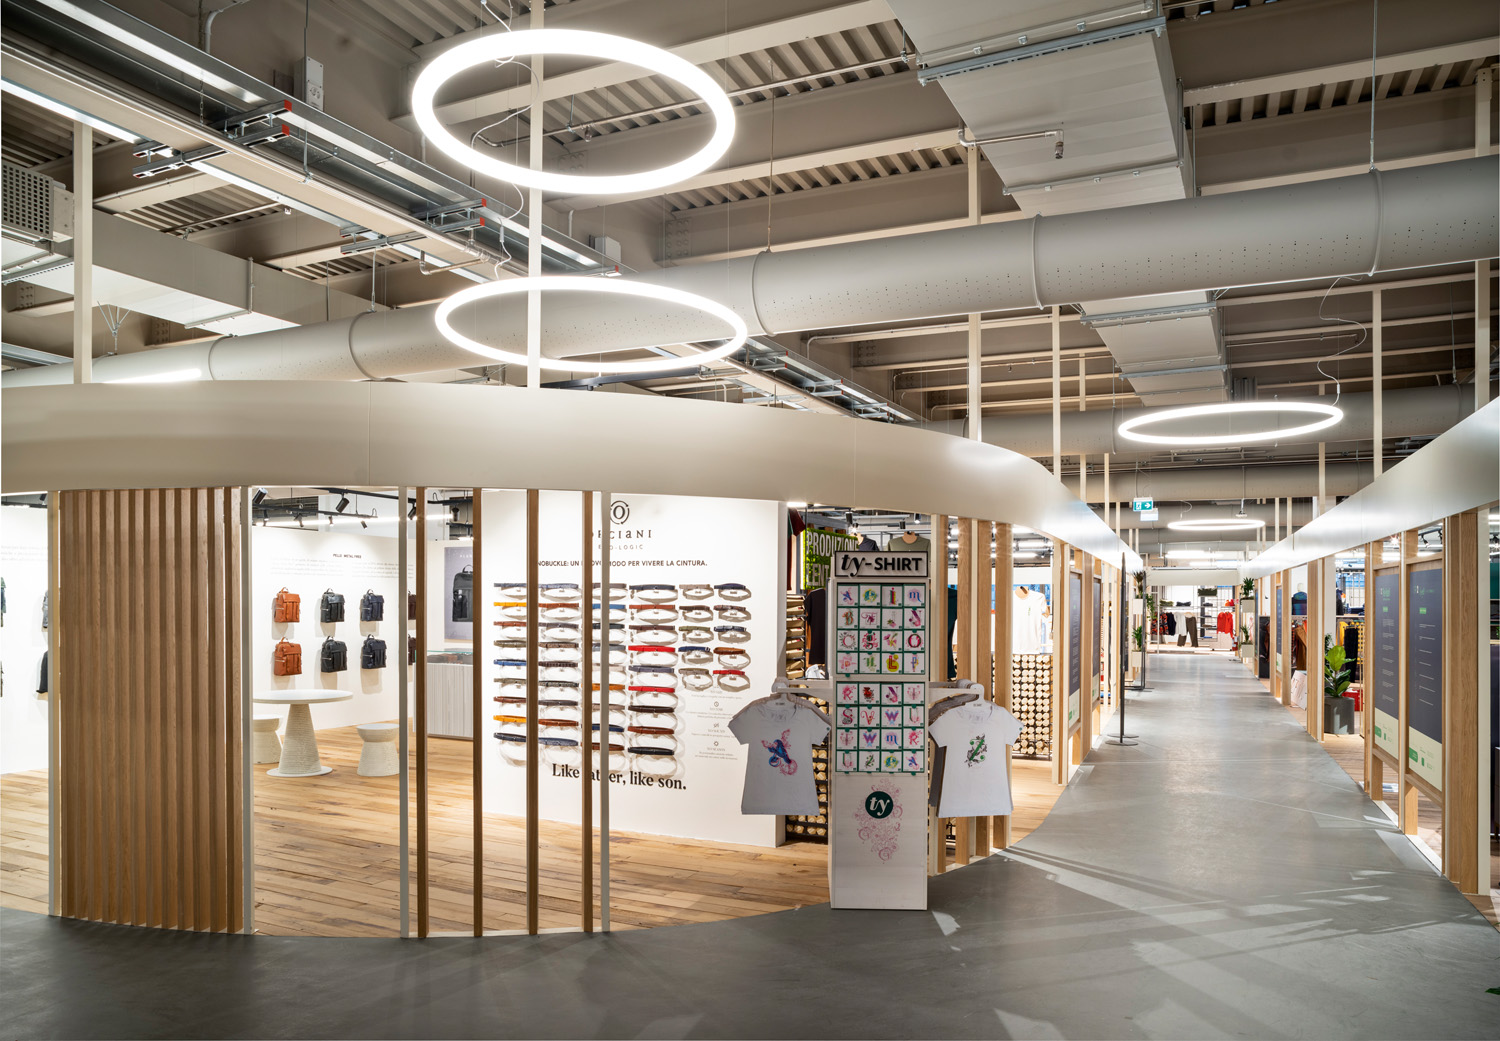 © Fabio Oggero courtesy ACC Naturale Architettura e Negozio Blu Architetti Associati Common spaces are lit by Alphabet of Light circular elements. Designed by BIG, this system generates a diffuse and pleasant light that it also highly-efficient.